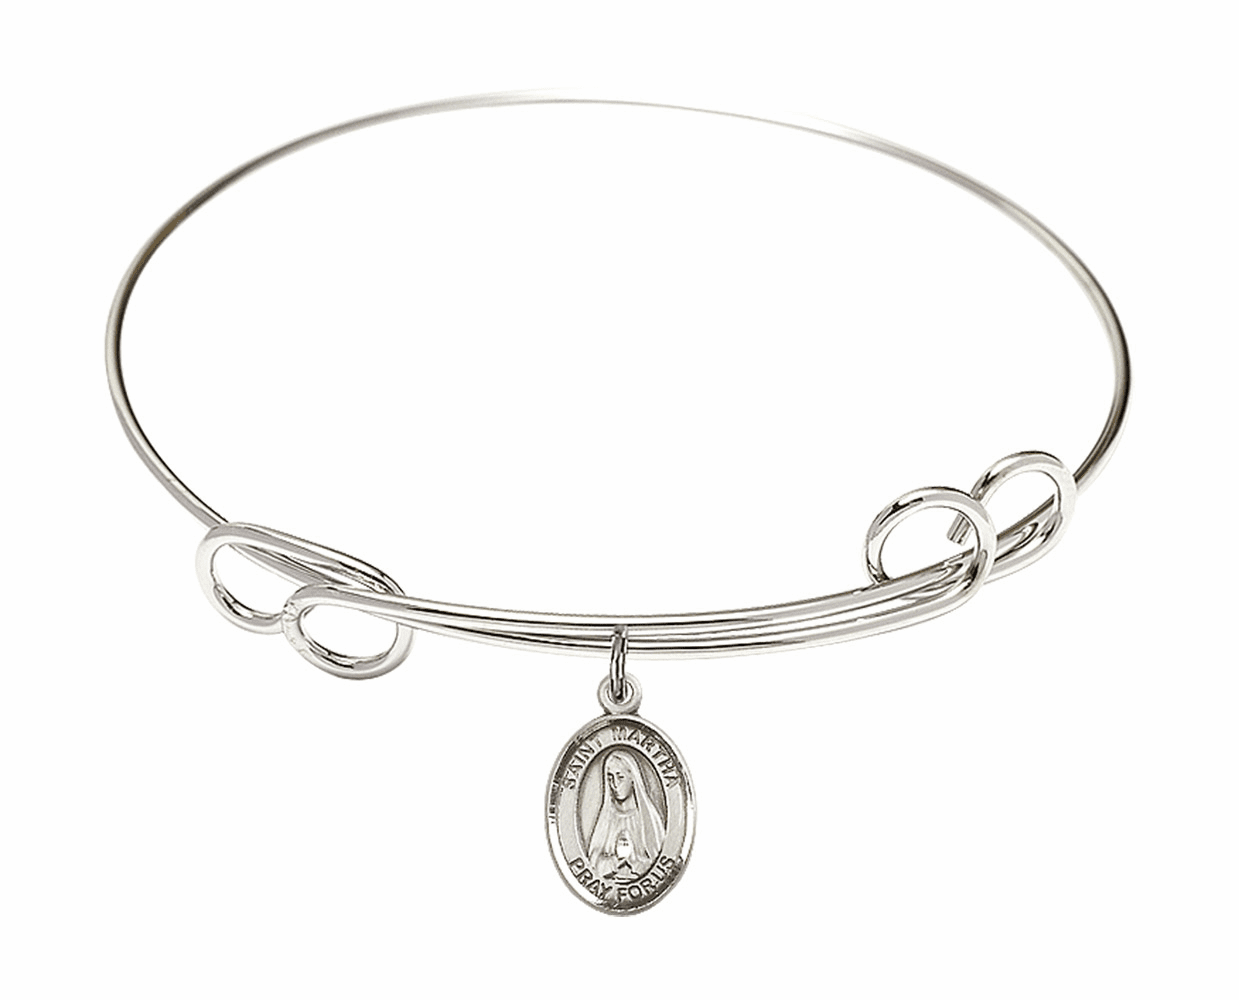 Round Loop St Martha Bangle Charm Bracelet by Bliss